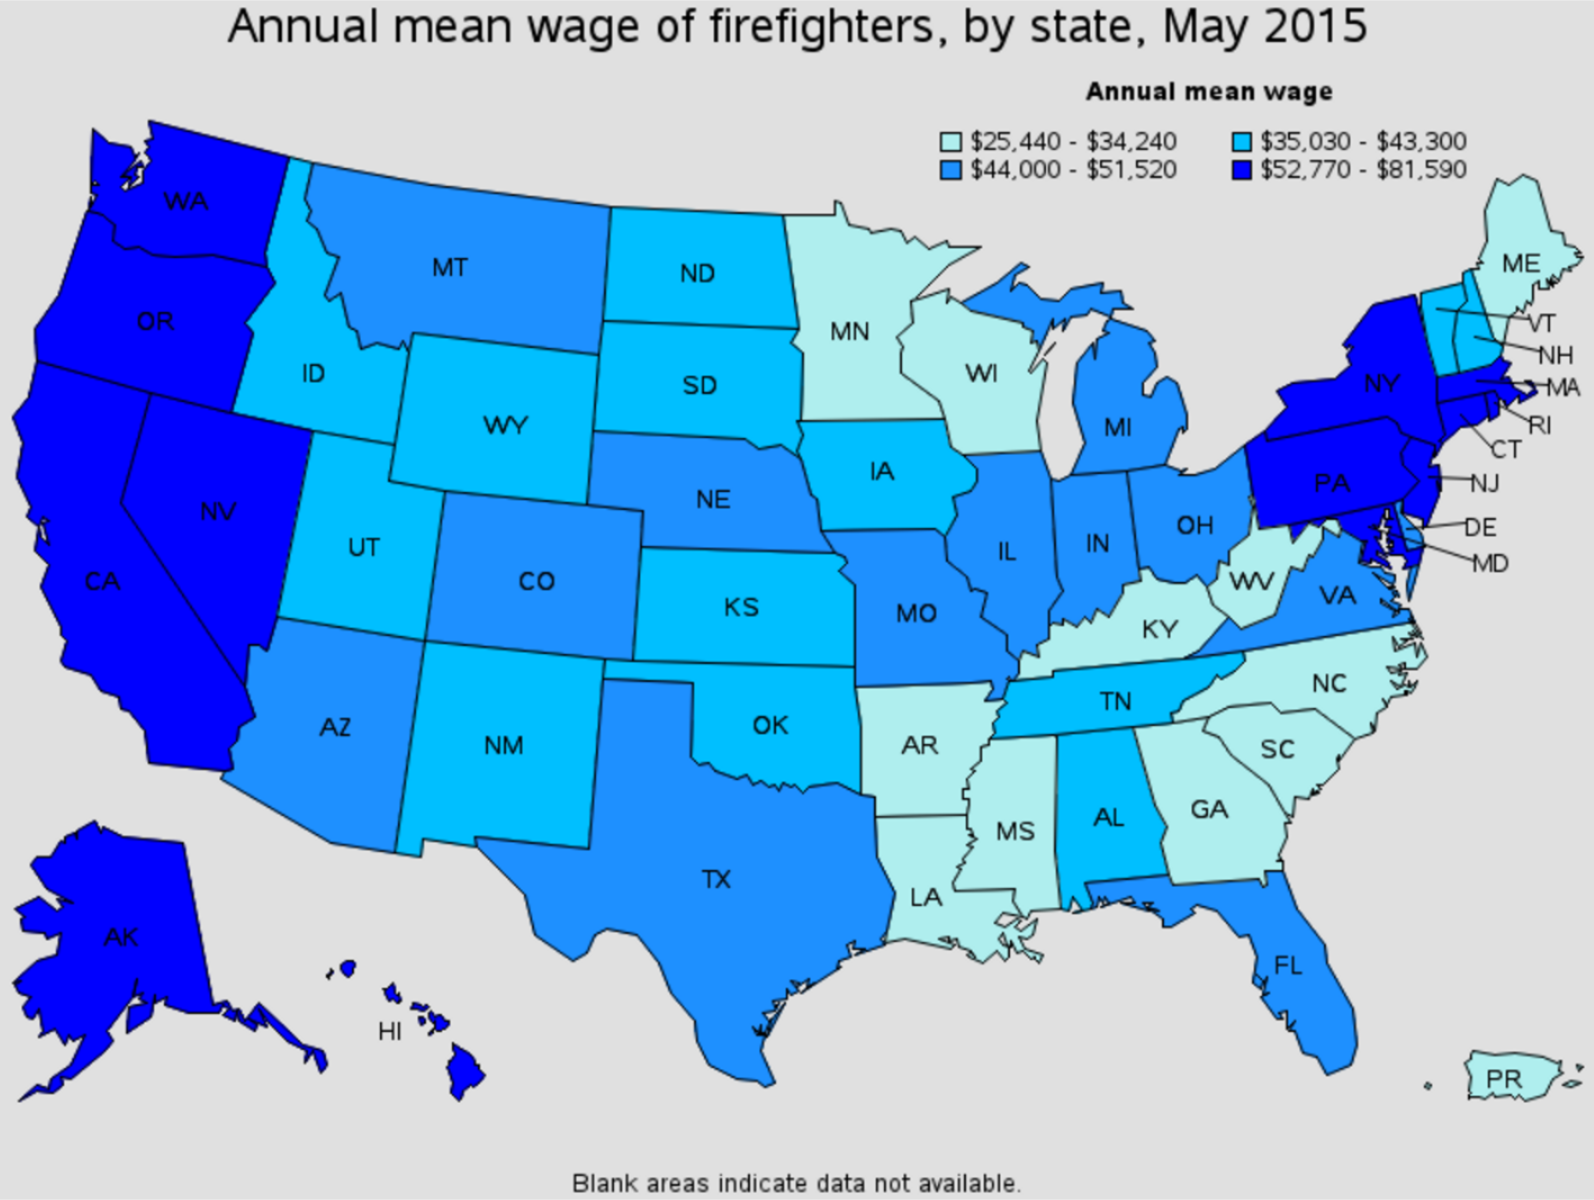 firefighter average salary by state Whiteford Maryland